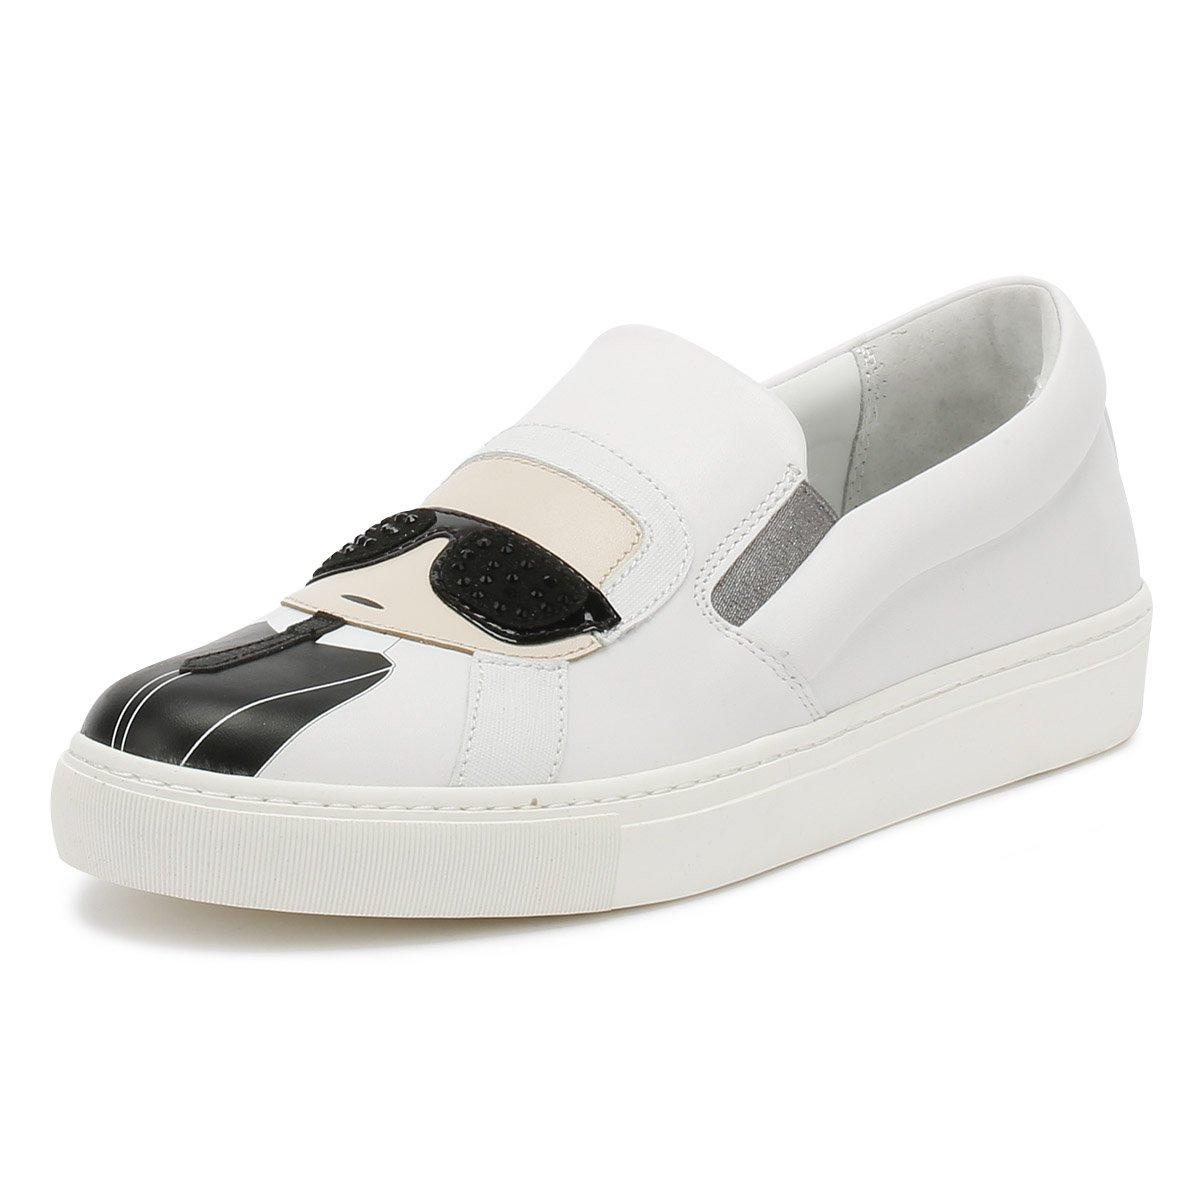 Karl Lagerfeld Sneakers Donna 61001 White